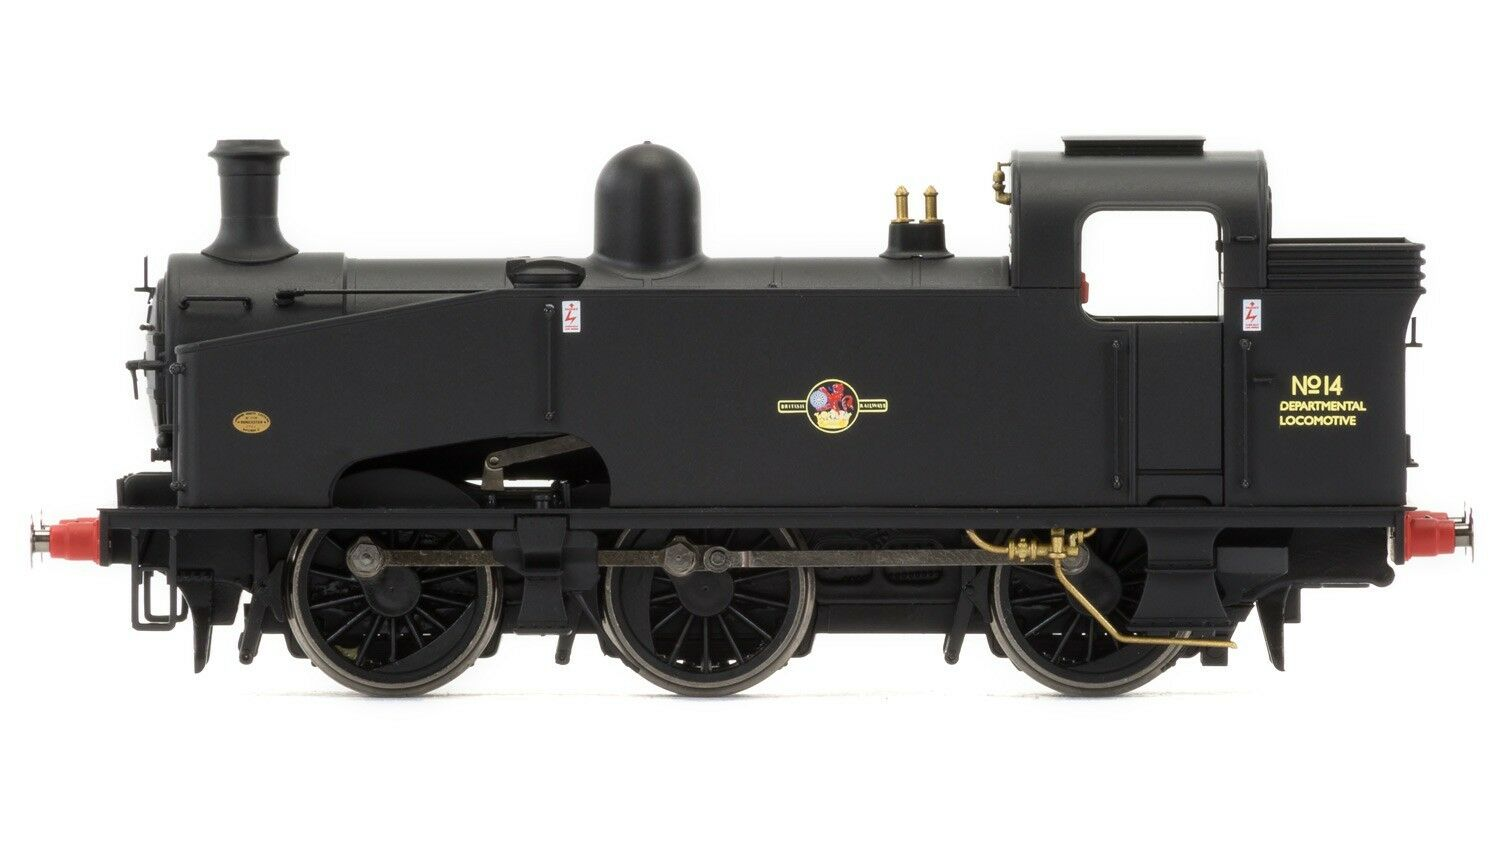 R3406 Hornby Br 0 6 0T 'Dipartimentale No.14' J50 Classe - Late DCC Ready